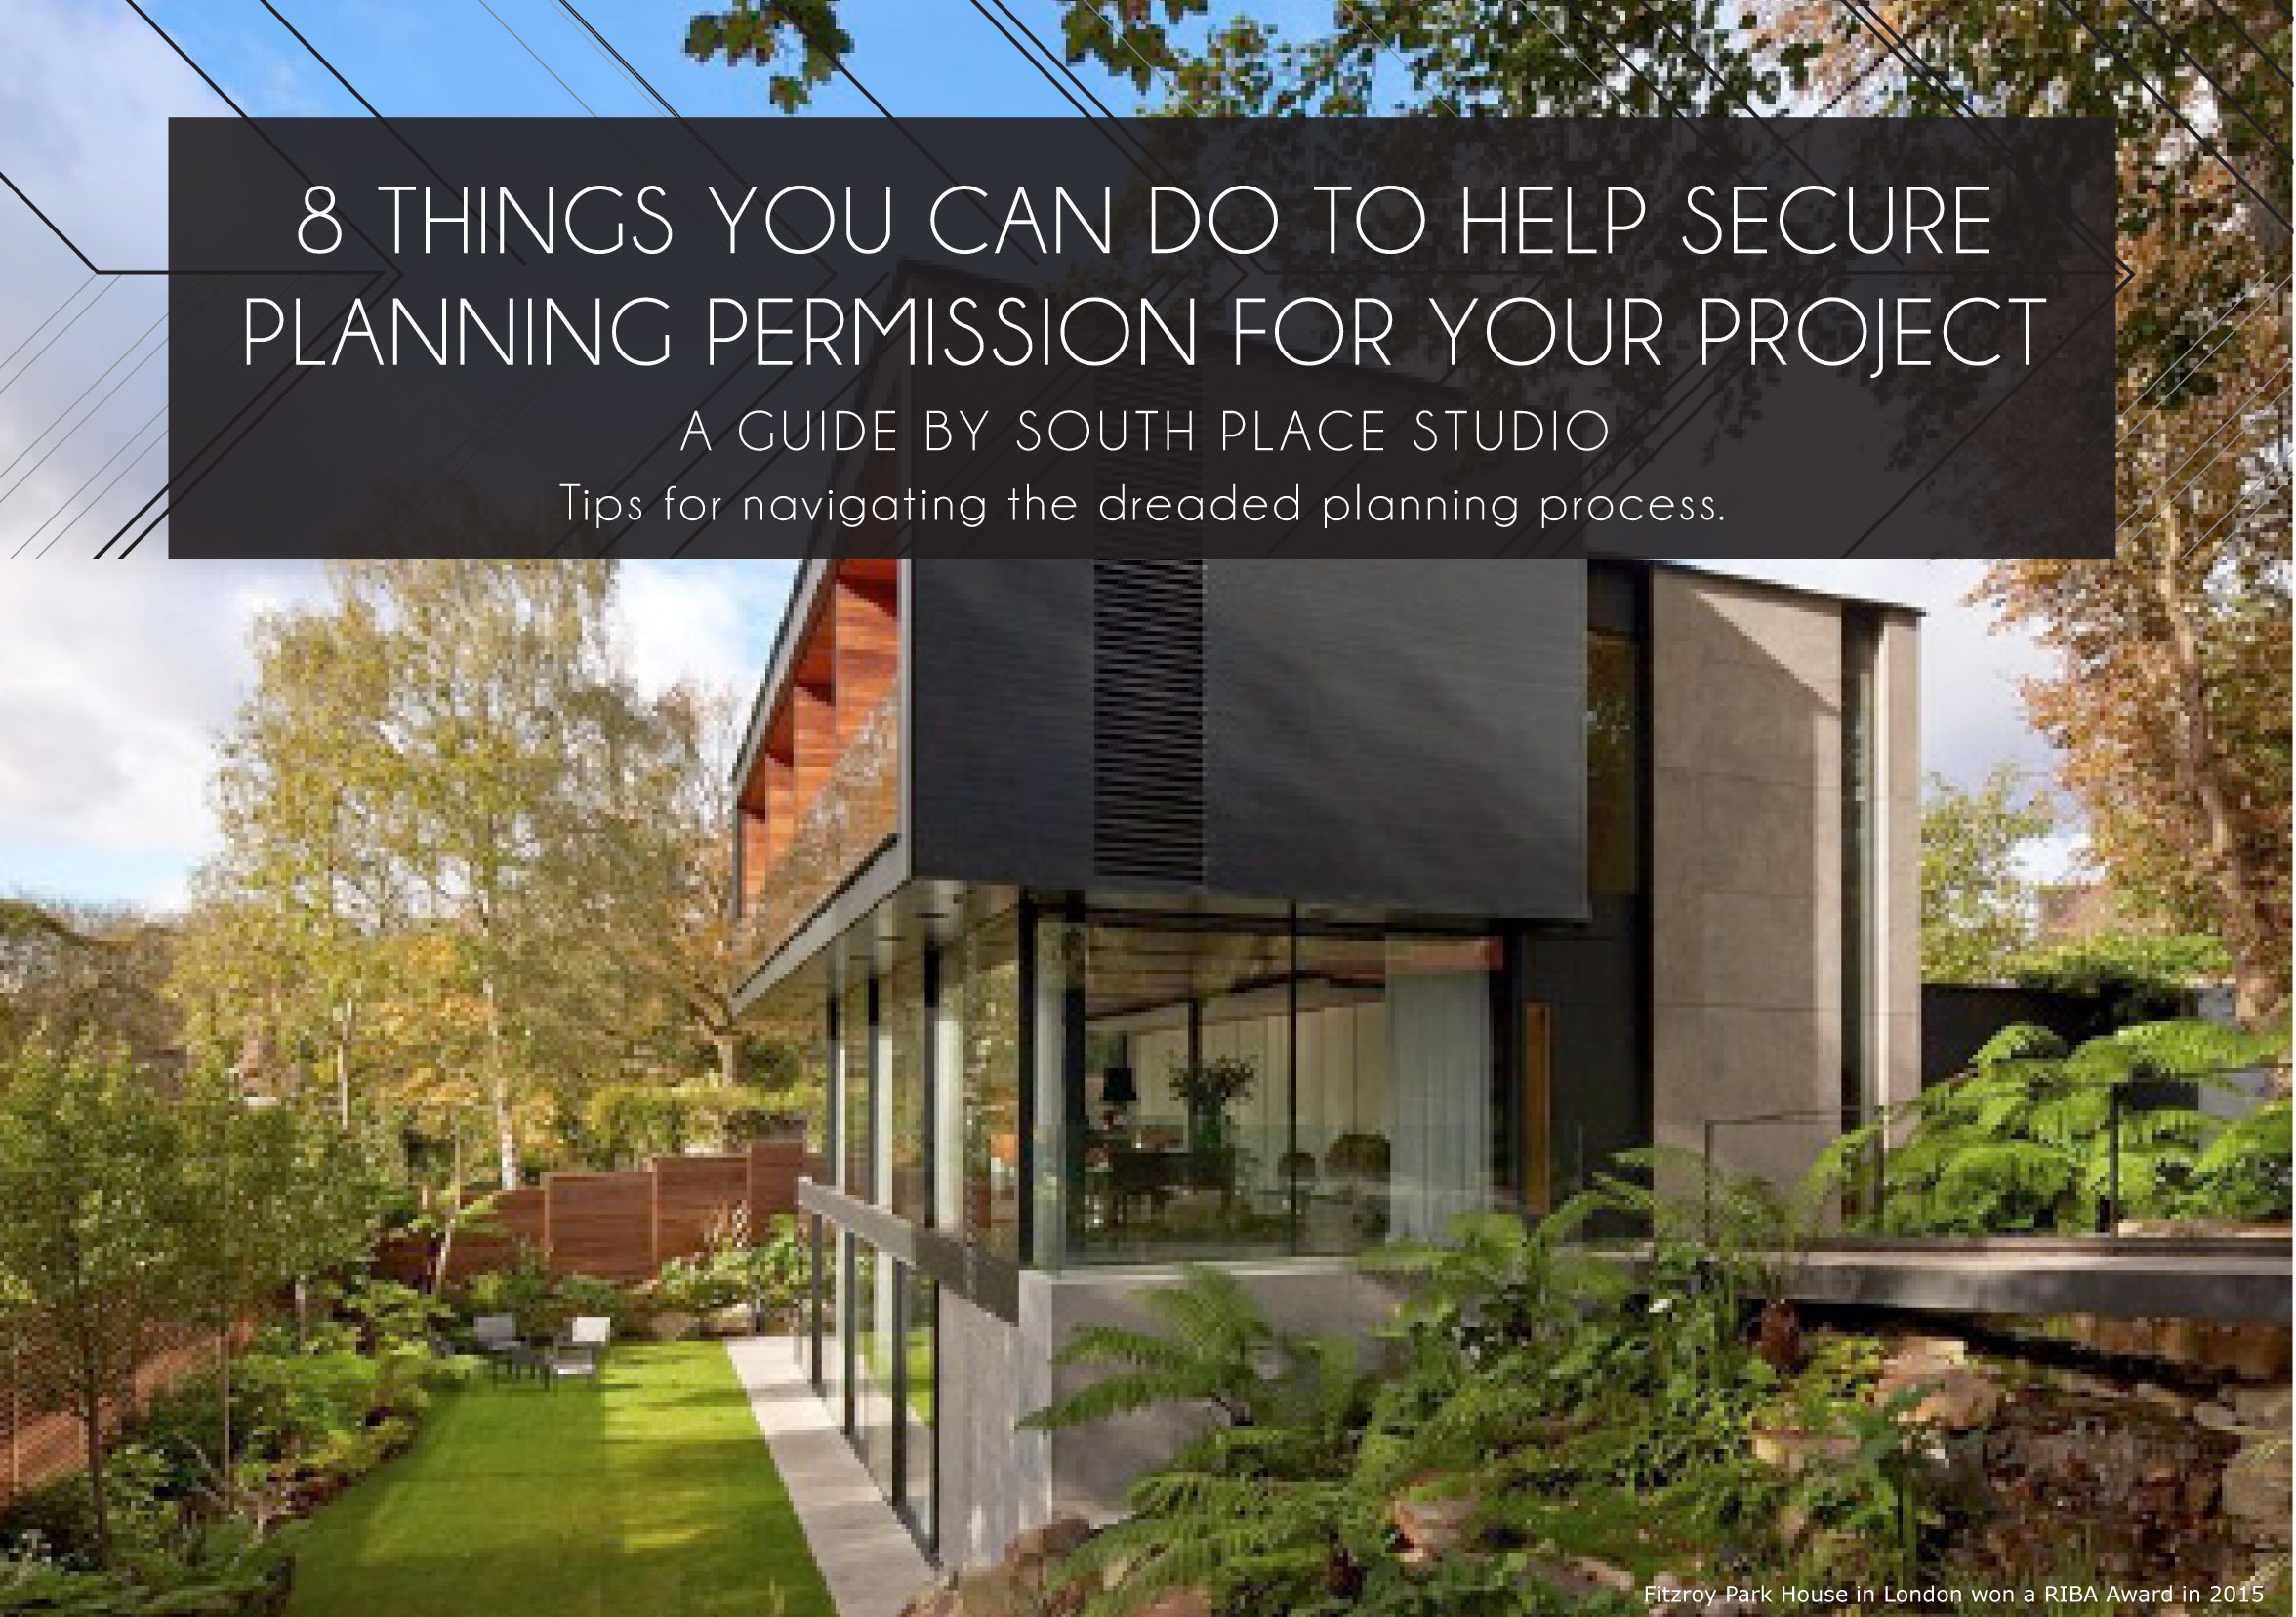 8 Things You Can Do To Help Secure Planning Permission For Your project